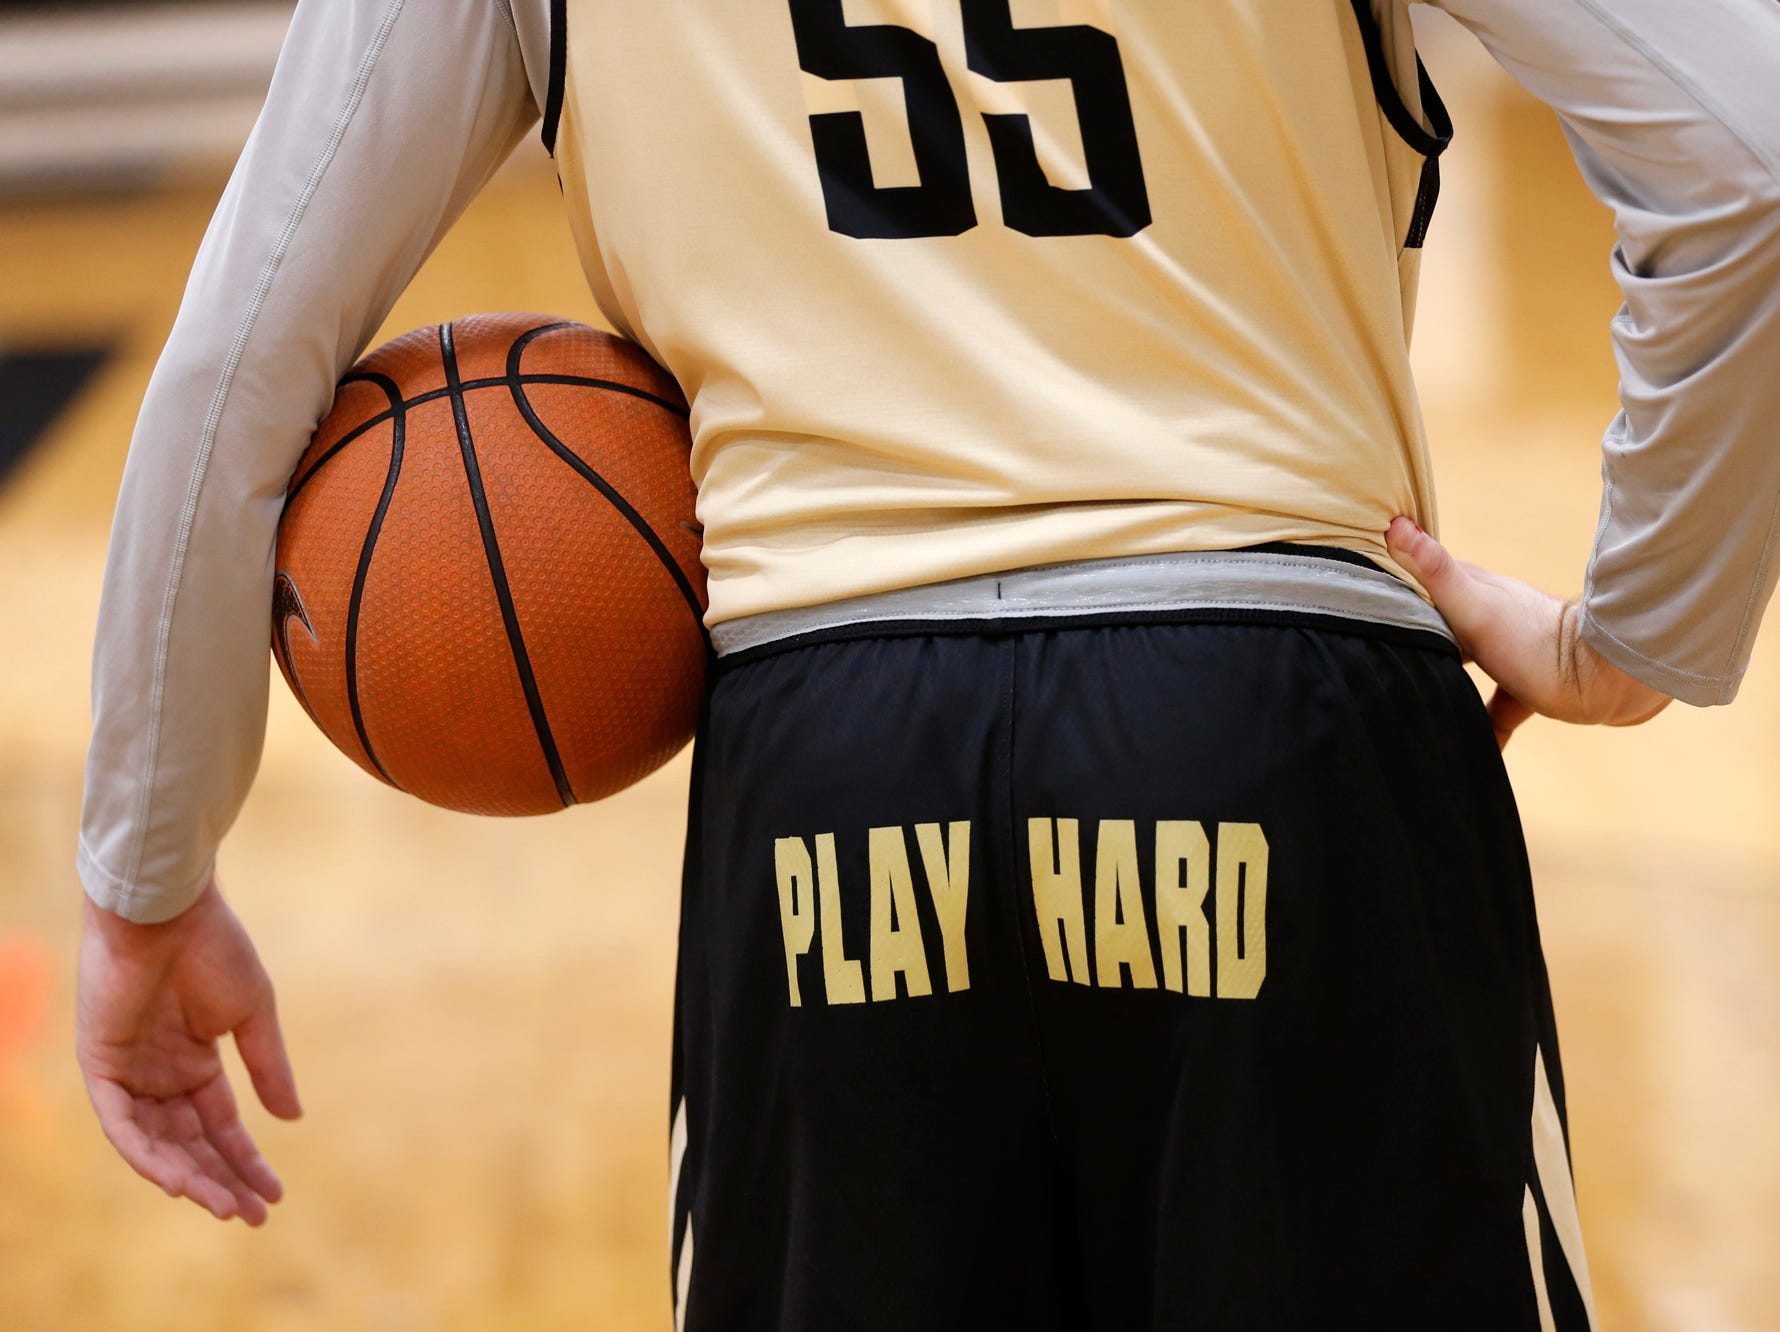 Sasha Stefaonvic holds the ball as head coach Matt Painter gives instructions during the first official practice of the season for Purdue men's basketball Tuesday, September 25, 2018, at Cardinal Court in Mackey Arena.